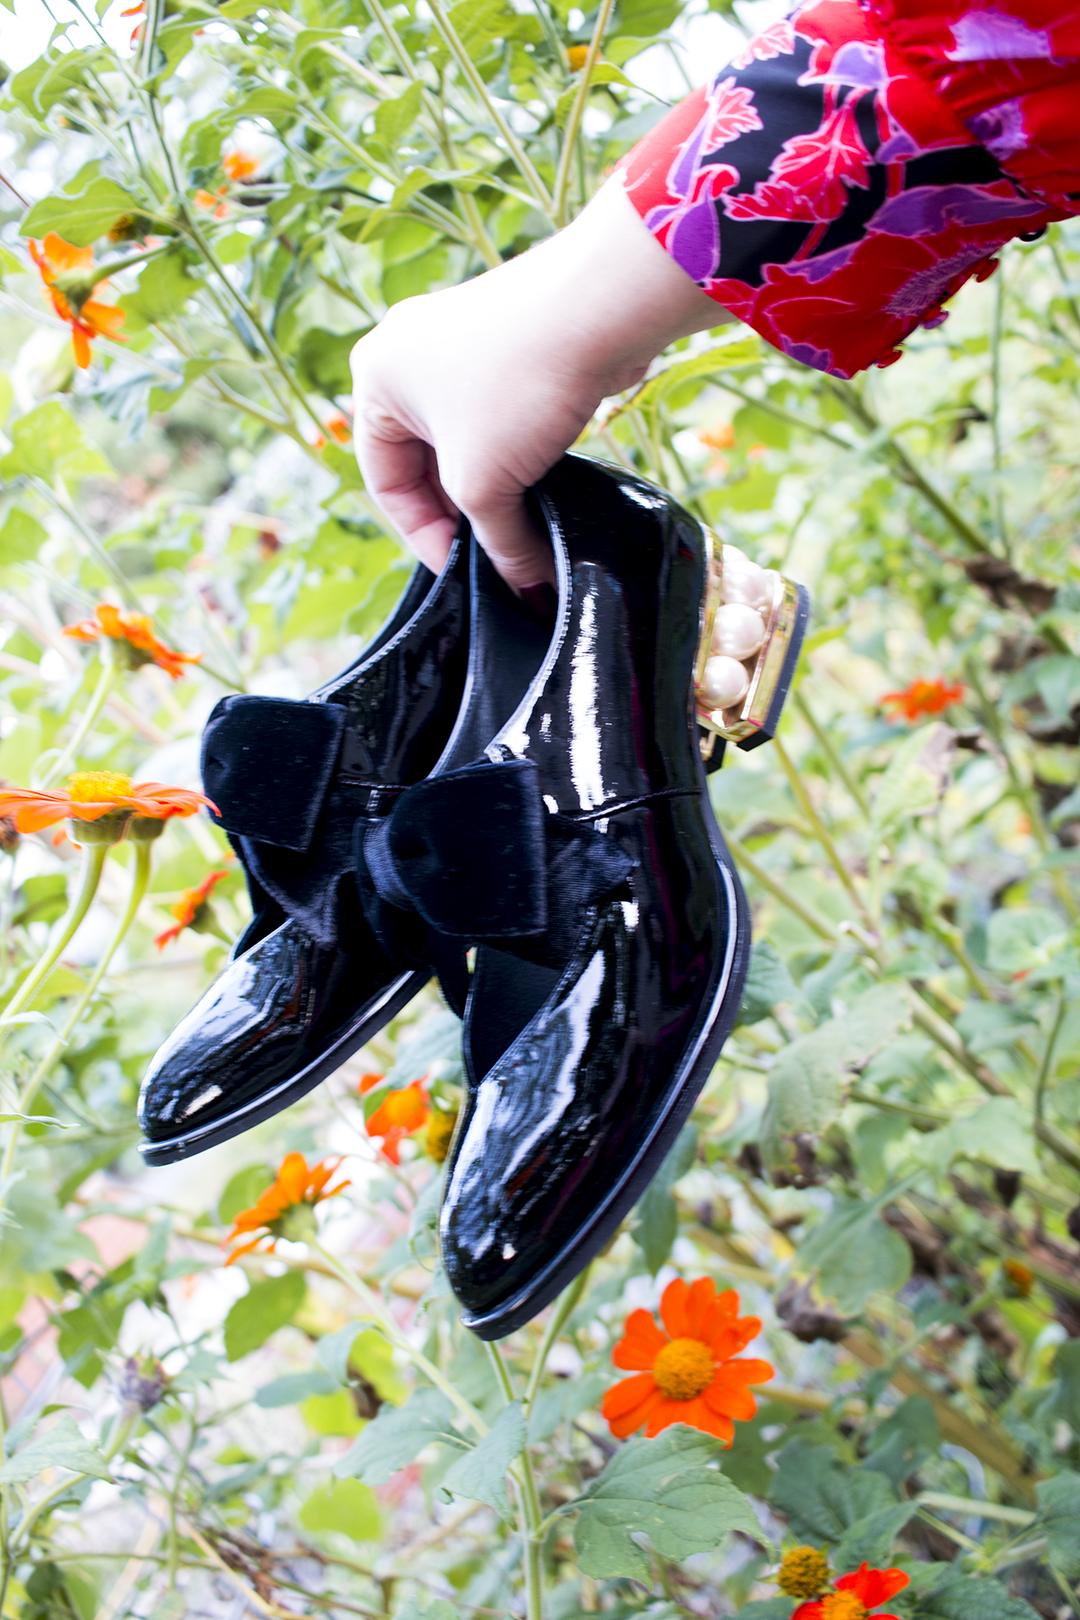 Jeffrey Campbell, Mary Jane Shoes, Velvet Bow Shoes, Pearl Heels, Plus Size Fashion Find, Plus Size Dress, Style Plus Curves, Chicago Blogger, Chicago Plus Size Blogger, Plus Size Blogger, Amber McCulloch